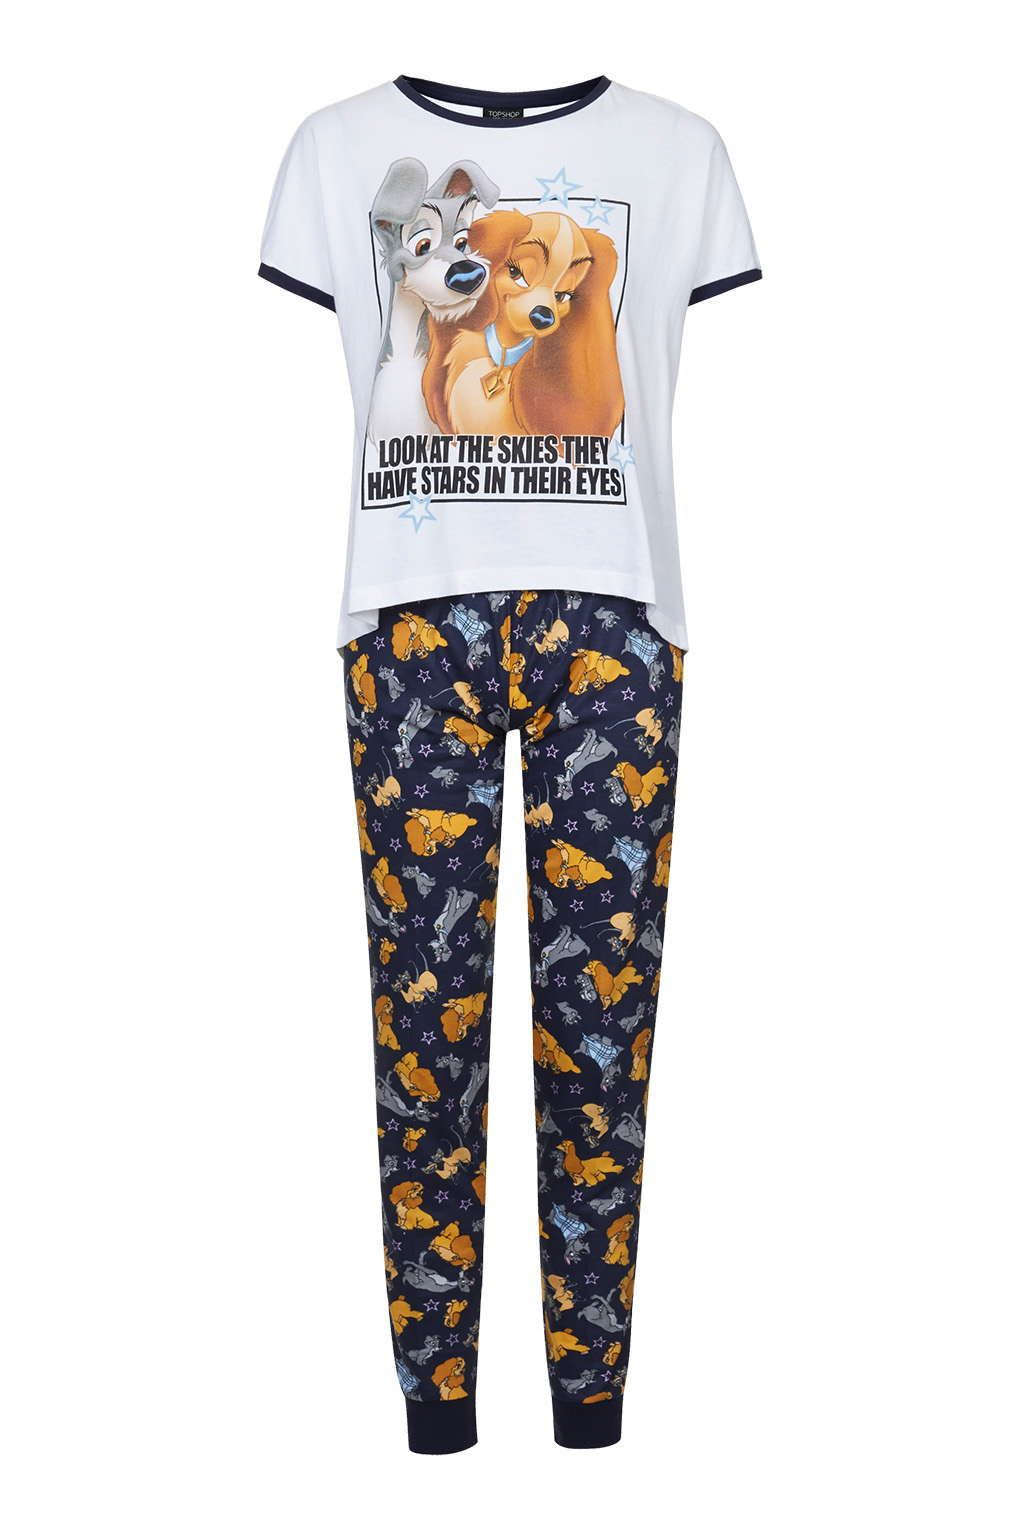 fe41594f3b8e Topshop Lady and the Tramp Pyjama Set | Lady and the Tramp in 2019 ...